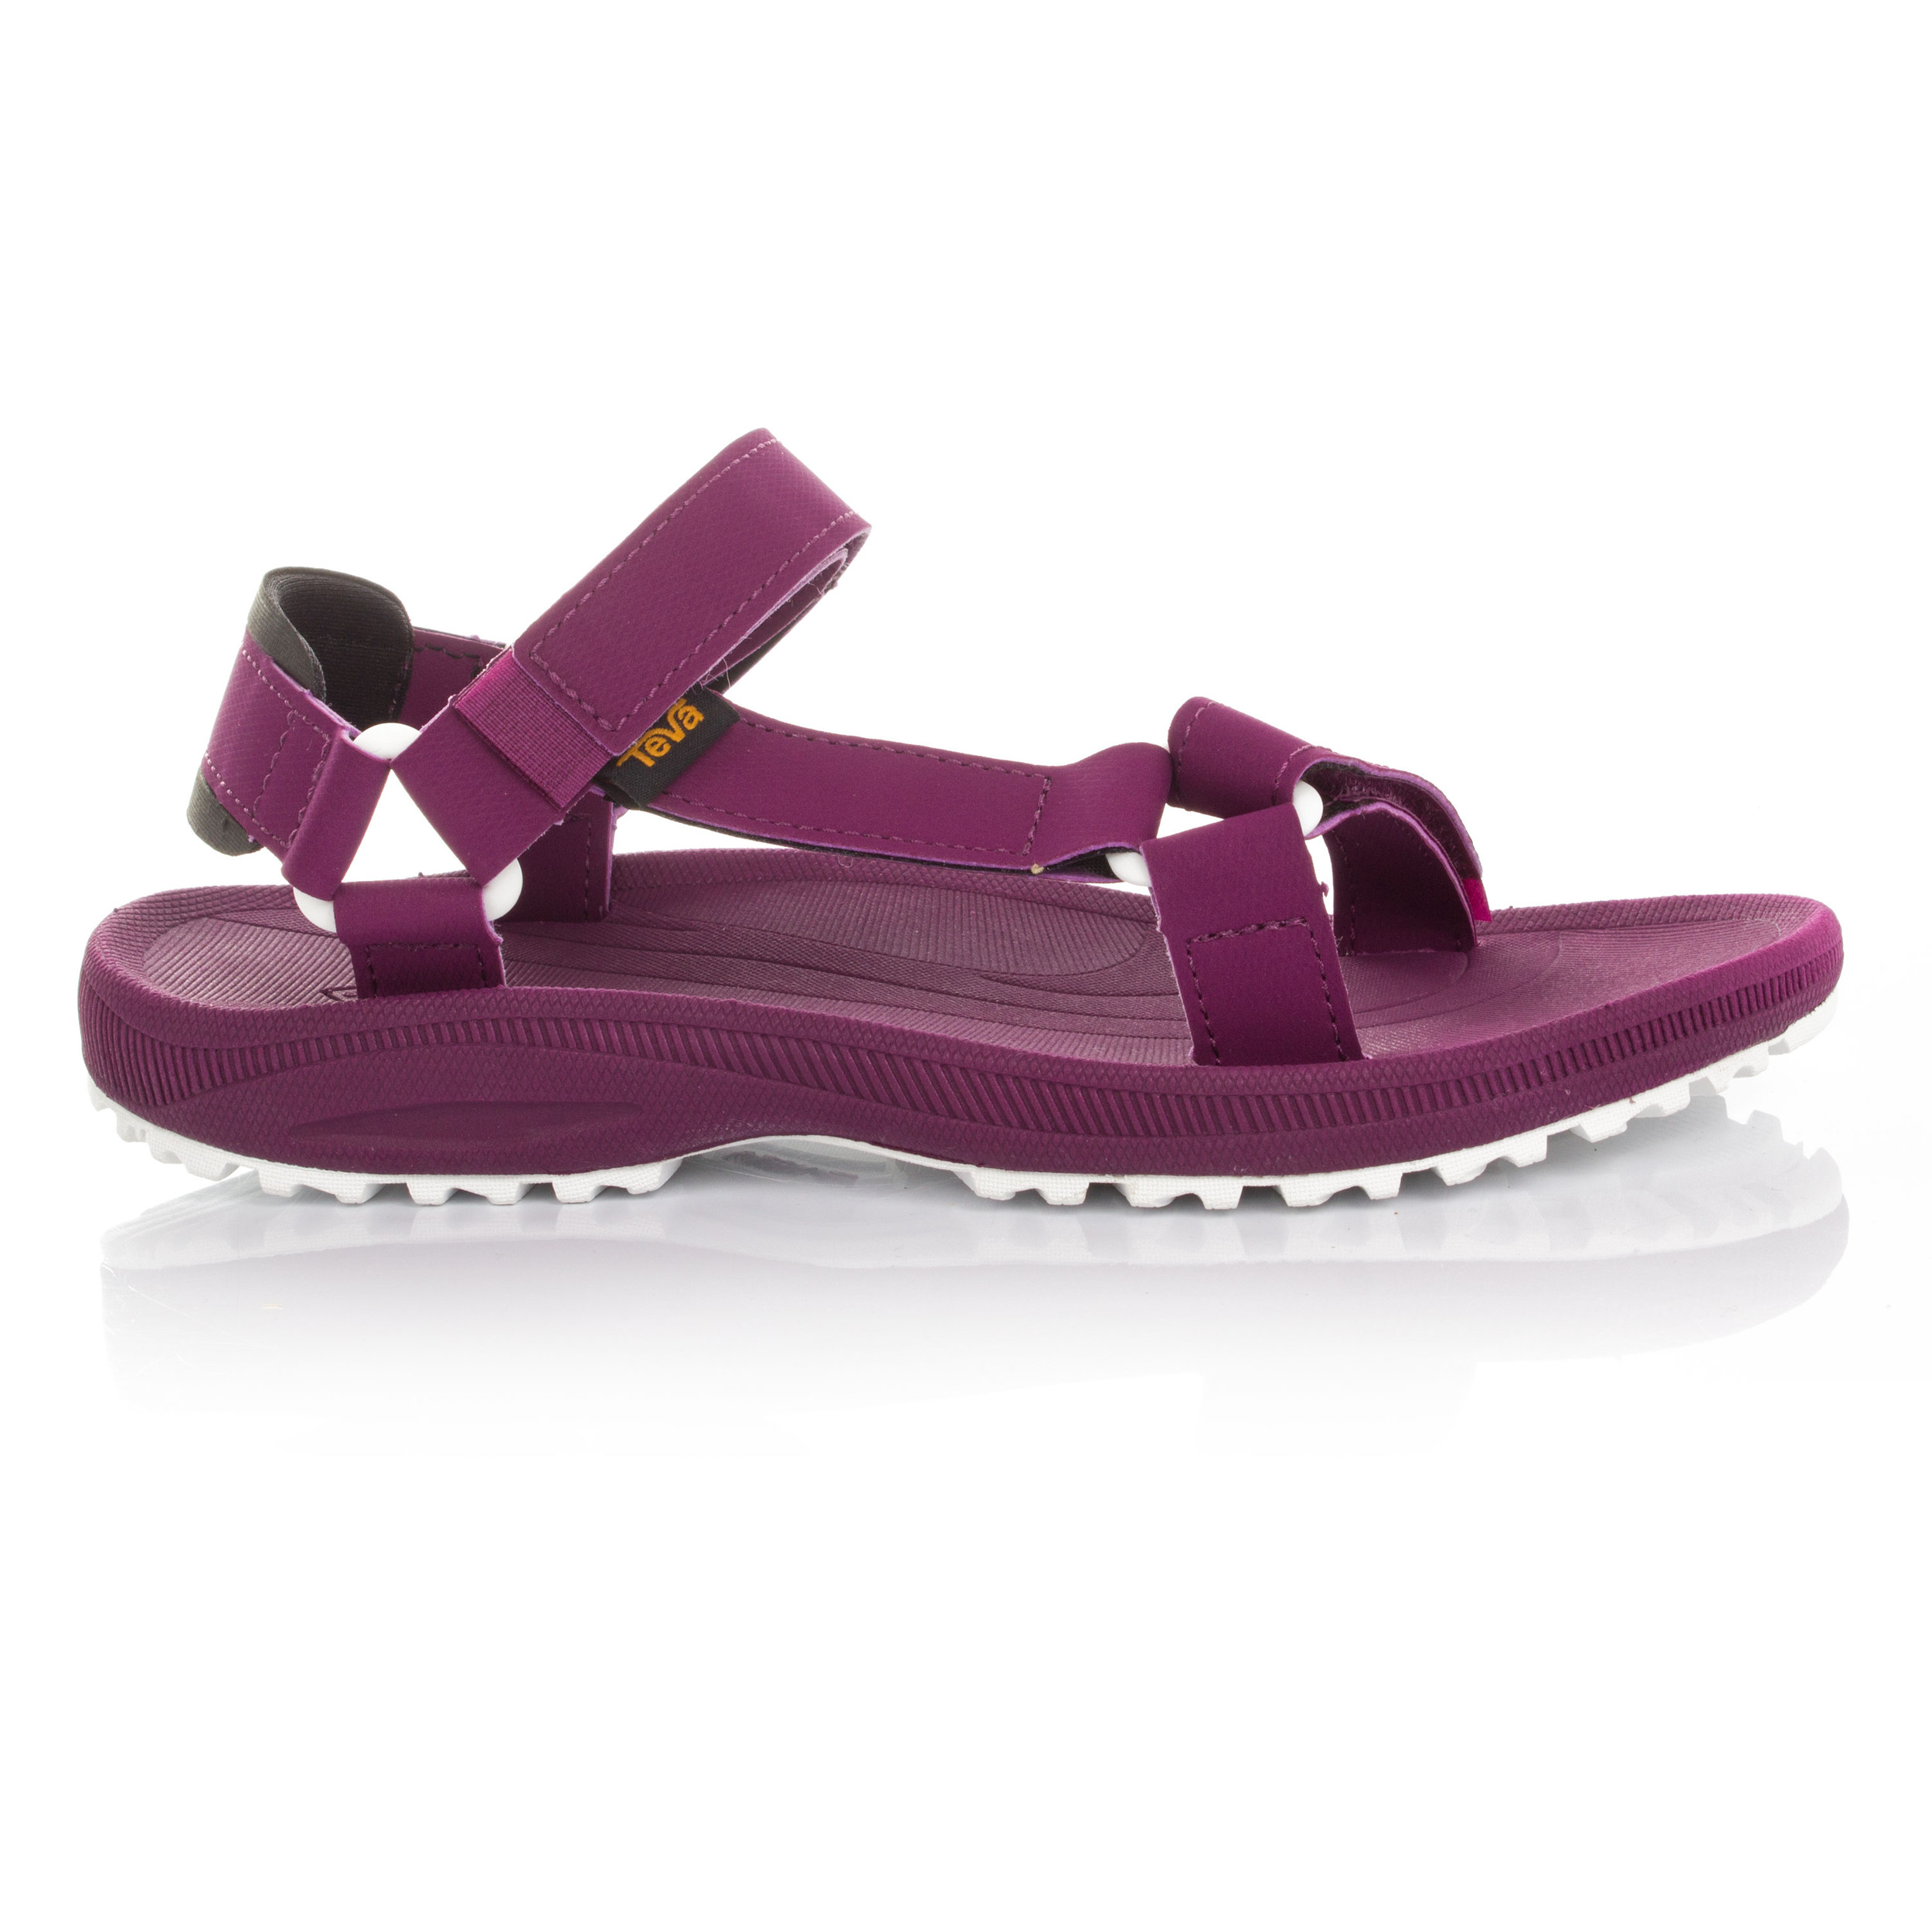 f22a8ca01 Details about Teva Winsted S Womens Purple Walking Trekking Summer Shoes  Sandals